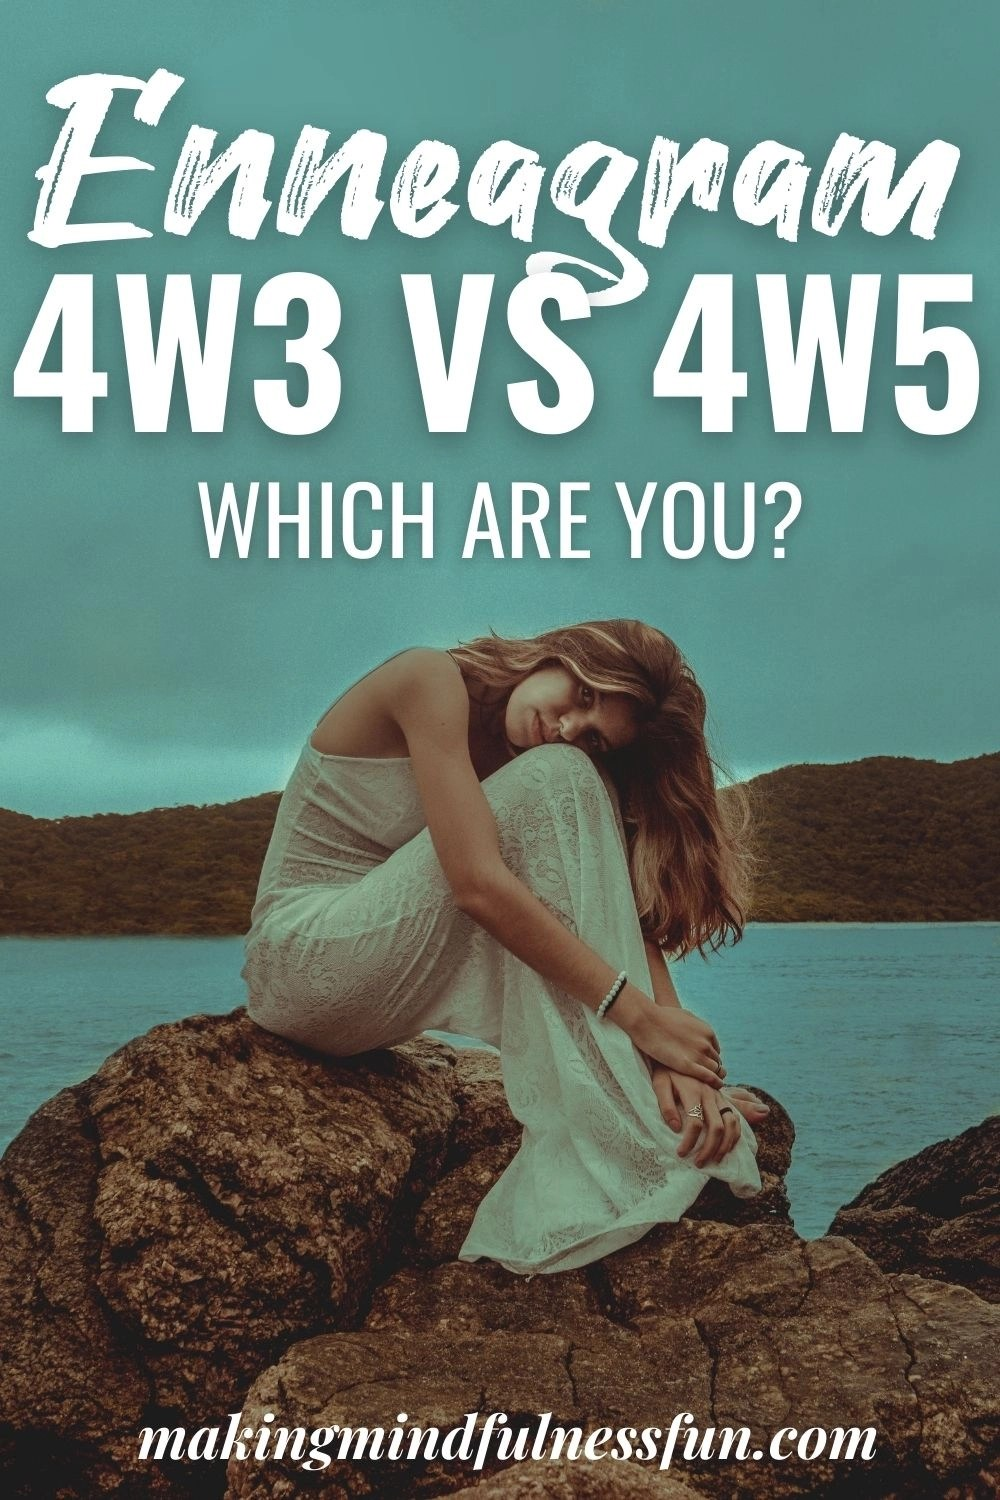 Enneagram 4w3 vs 4w5 Which Are You?